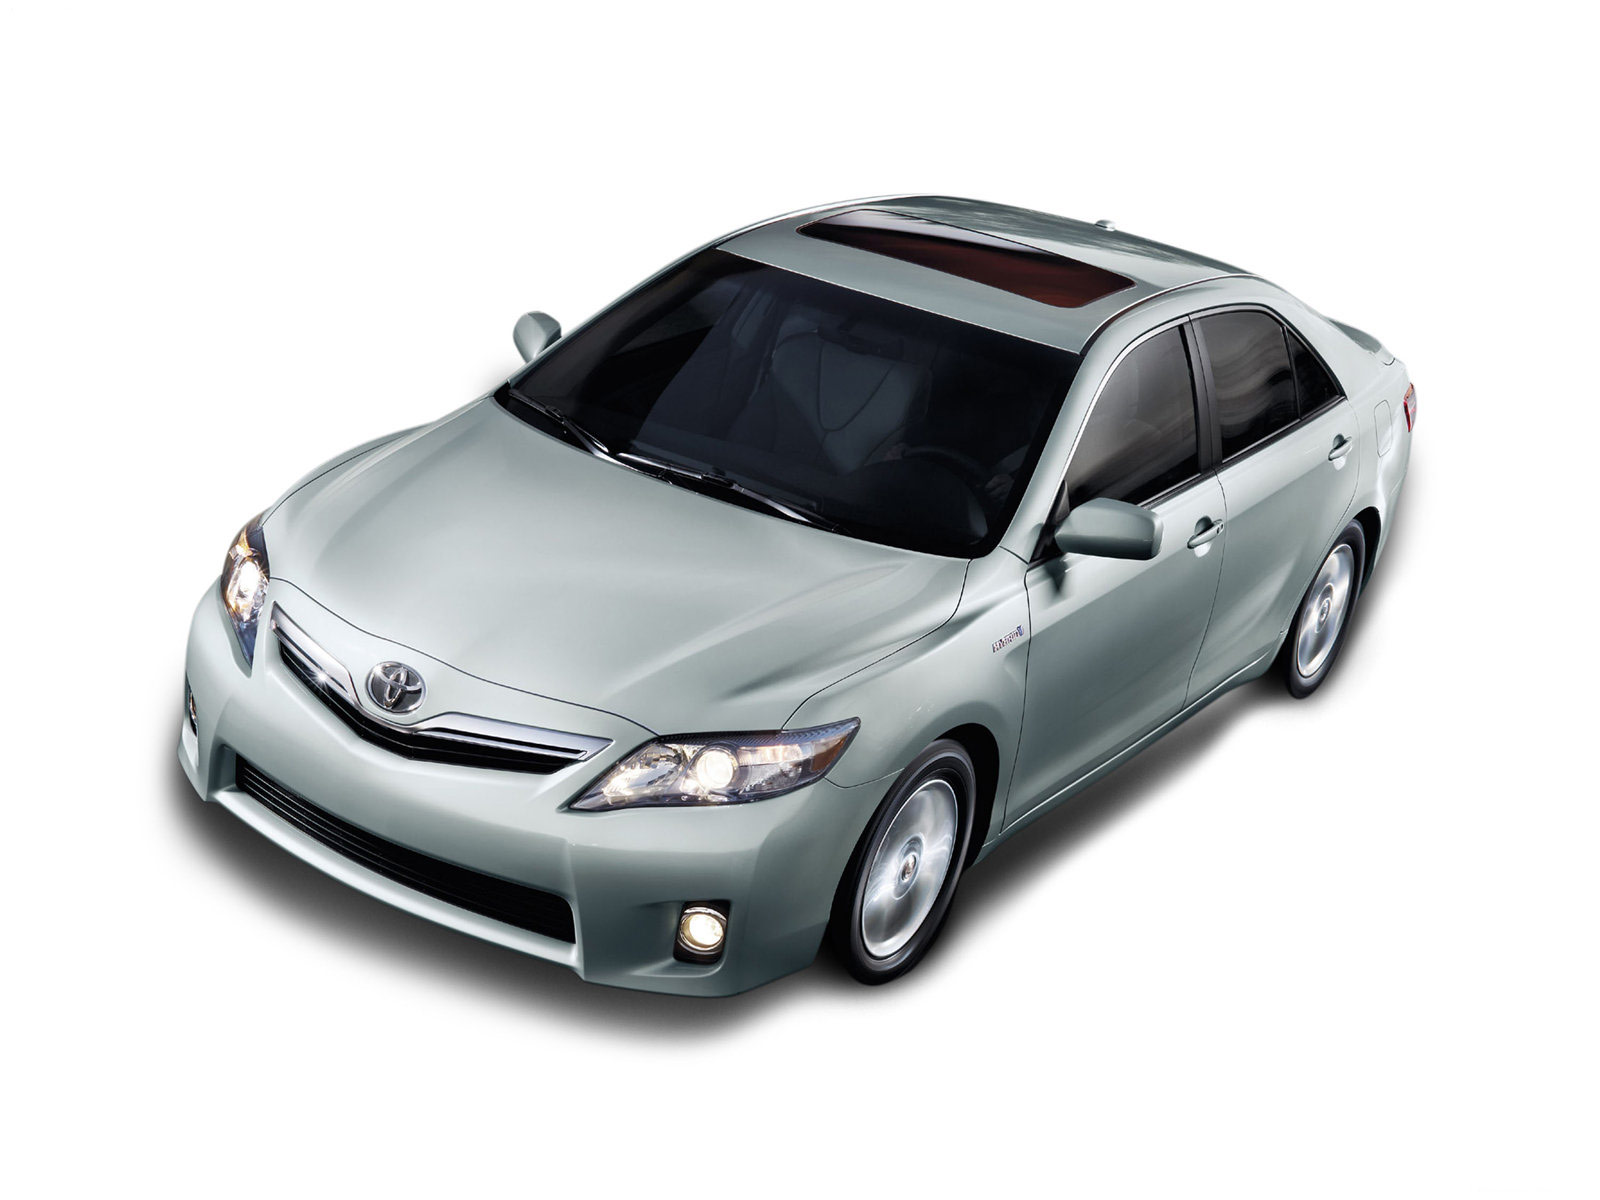 2010 toyota camry car pictures. Black Bedroom Furniture Sets. Home Design Ideas